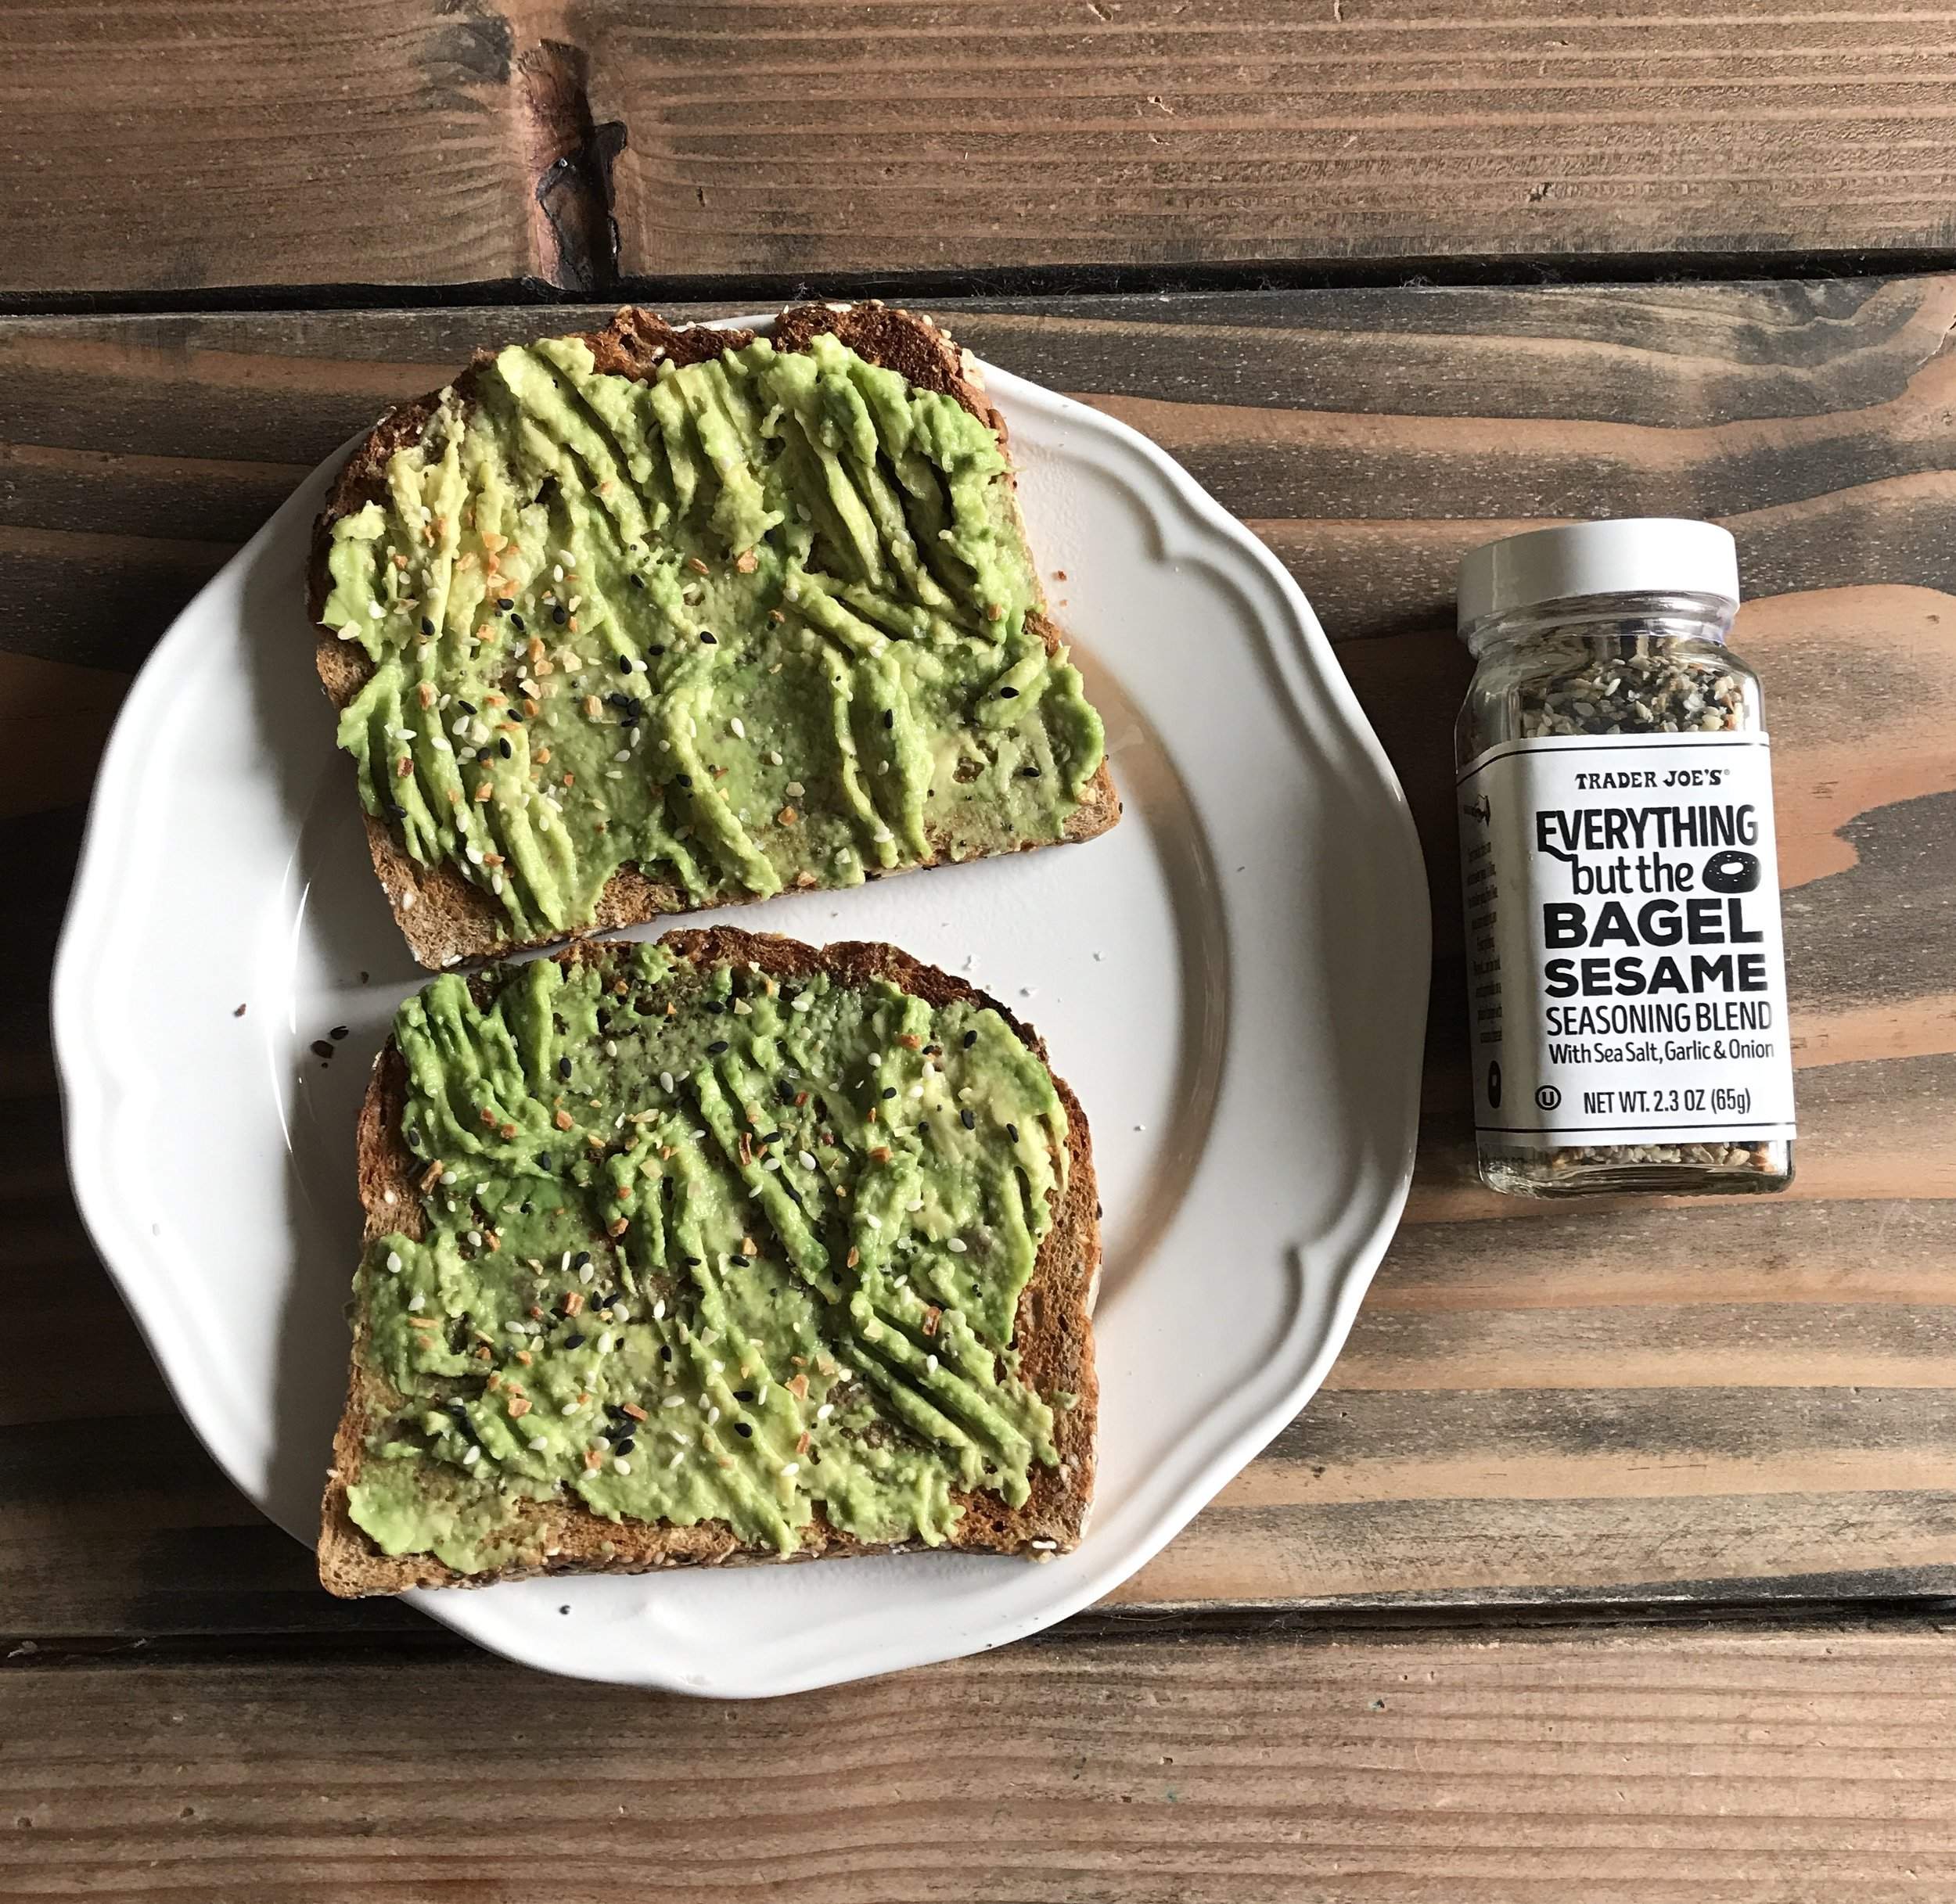 This seasoning is seriously the most amazing stuff on the planet.  Sprinkle it on sandwiches, toast, bagels.  Amaze.  I use half of an organic avocado and Dave's Killer PowerSeed Bread.